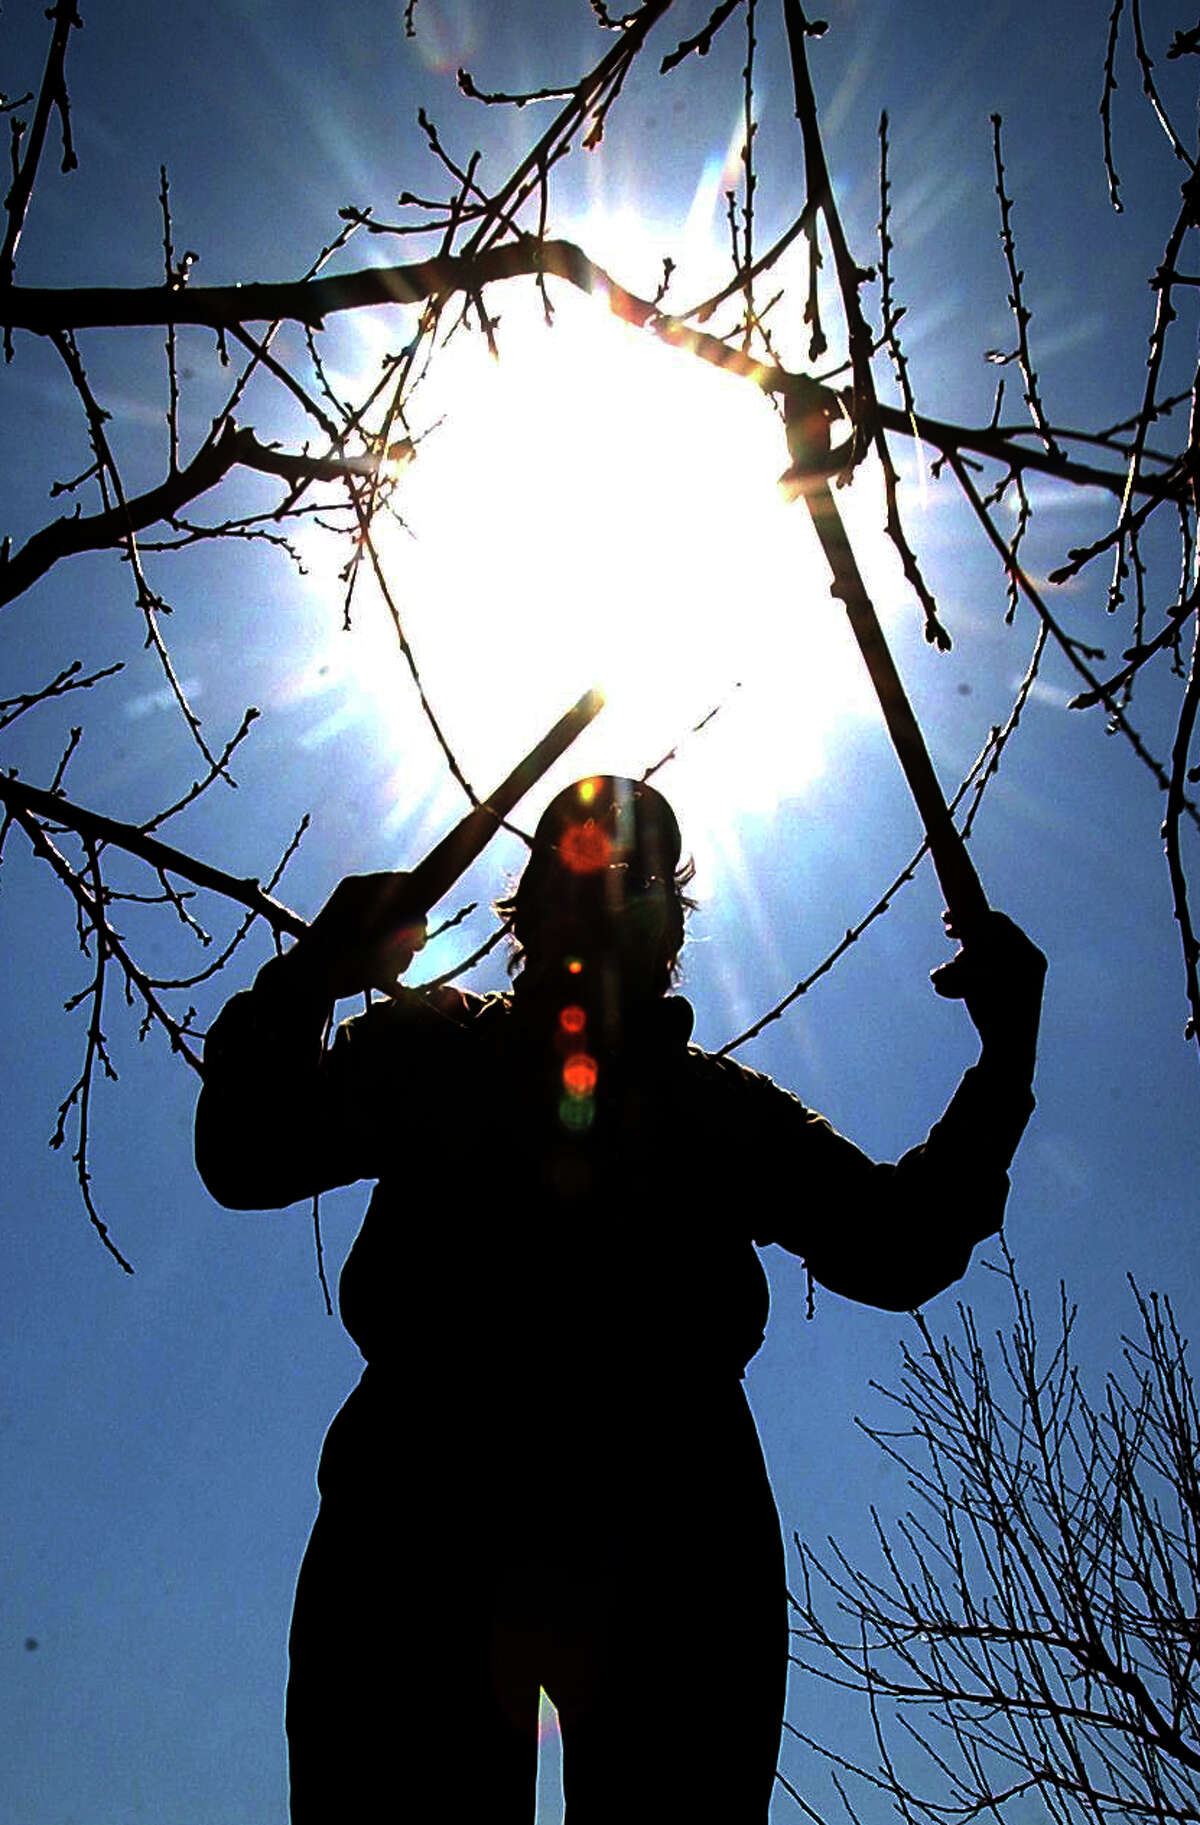 """3/20/2007 WEEKLY RECORD - FILE Adolfo Barajas of Mexico prunes a fruit tree at Blevins Fruit Farm in Hopewell Township in 2003. According to The International Society of Arboriculture, pruning is the most common tree-maintenance procedure. For more on trees, see page 8. local by bil. Blevins Fruit Farm in Hopewell Township boasts 200 acres of fruit trees, and Adolfo Barajas and his five-man crew will cut, trim and shape every tree. It's a long process, Barajas says, forcing the 57-year old to leave his home in Mexico in February and not return until October. Barajas has worked for owner Kent Blevins for nine years, trimming trees seven or eight trees an hour for ten hours a day. Barajas and his five man crew come north to work because here, he says, he'll be paid for one day's work what he'll make in a week in Mexico. Blevins acknowledges it's hard work. Barajas doesn't mind. """"I like work. I am strong,"""" he says. MEXI 2"""